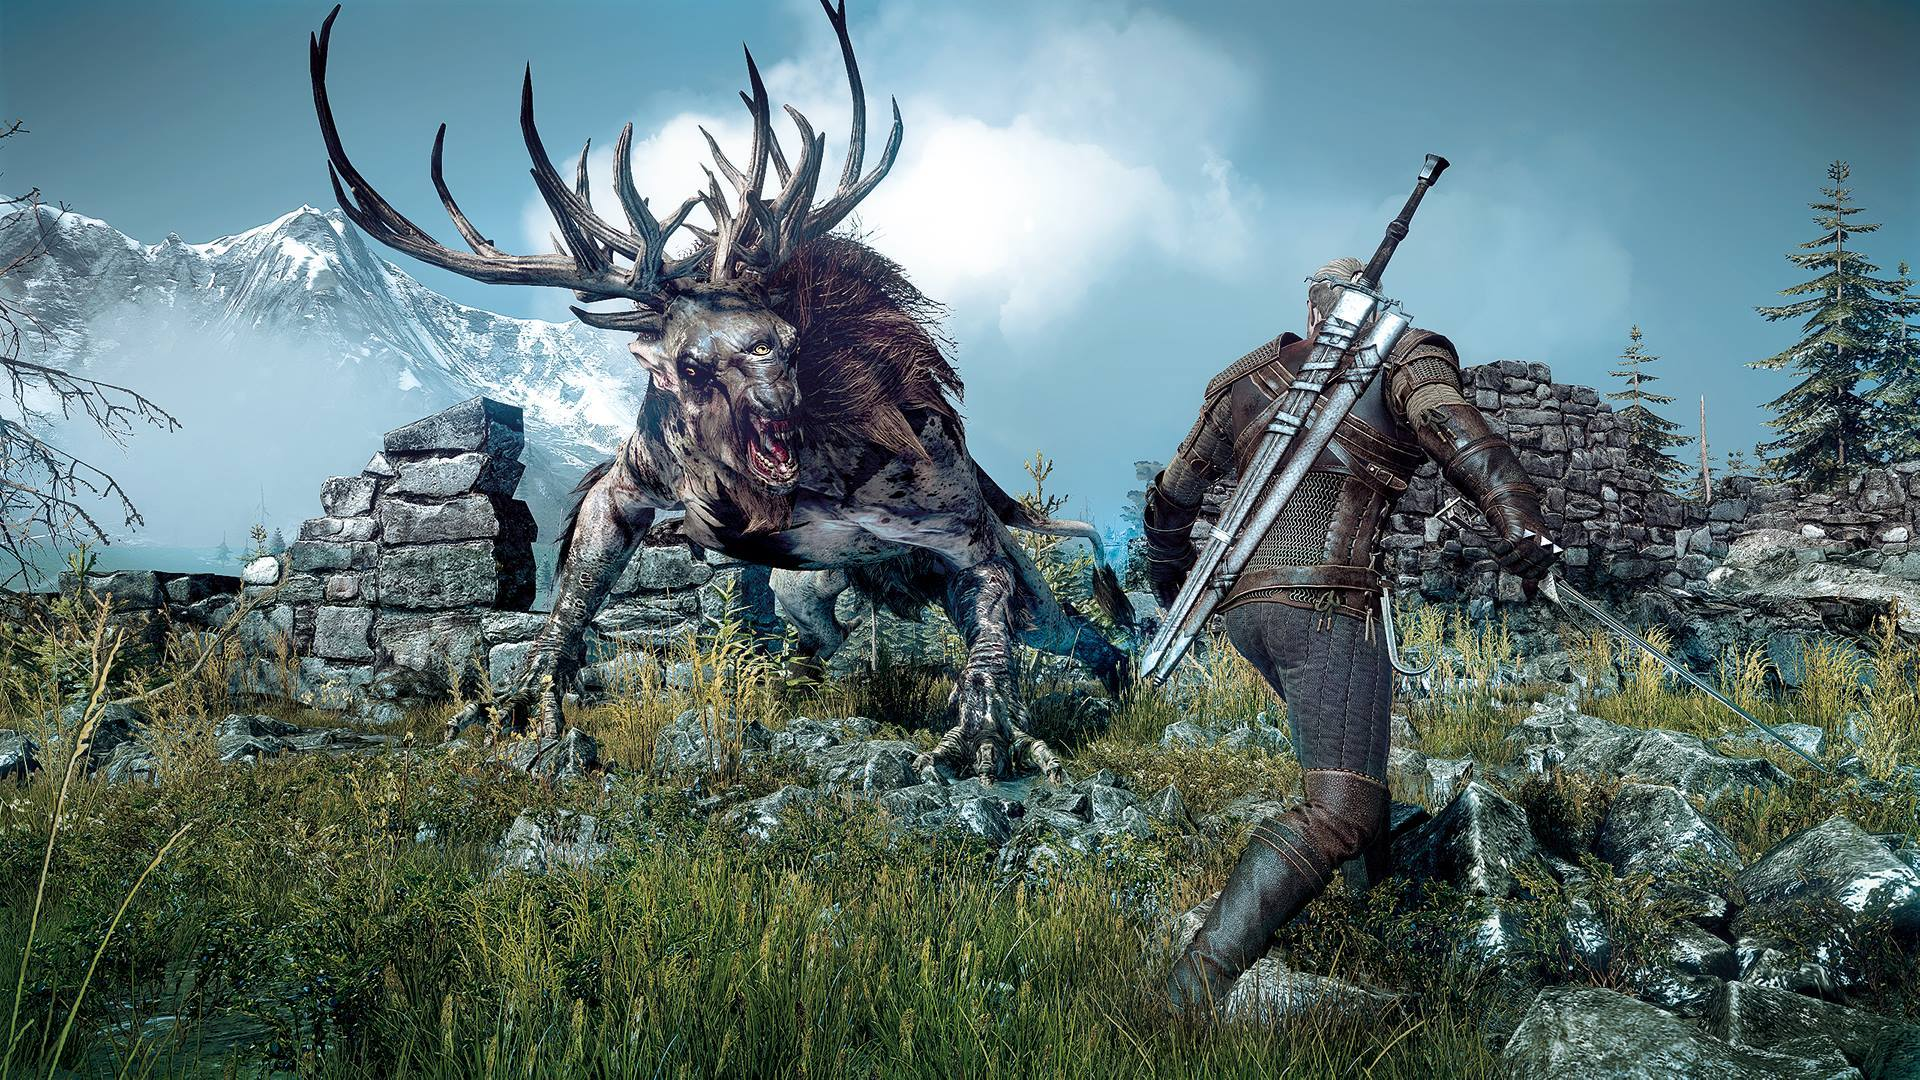 Una rápida mirada a The Witcher 3: Wild Hunt en PC